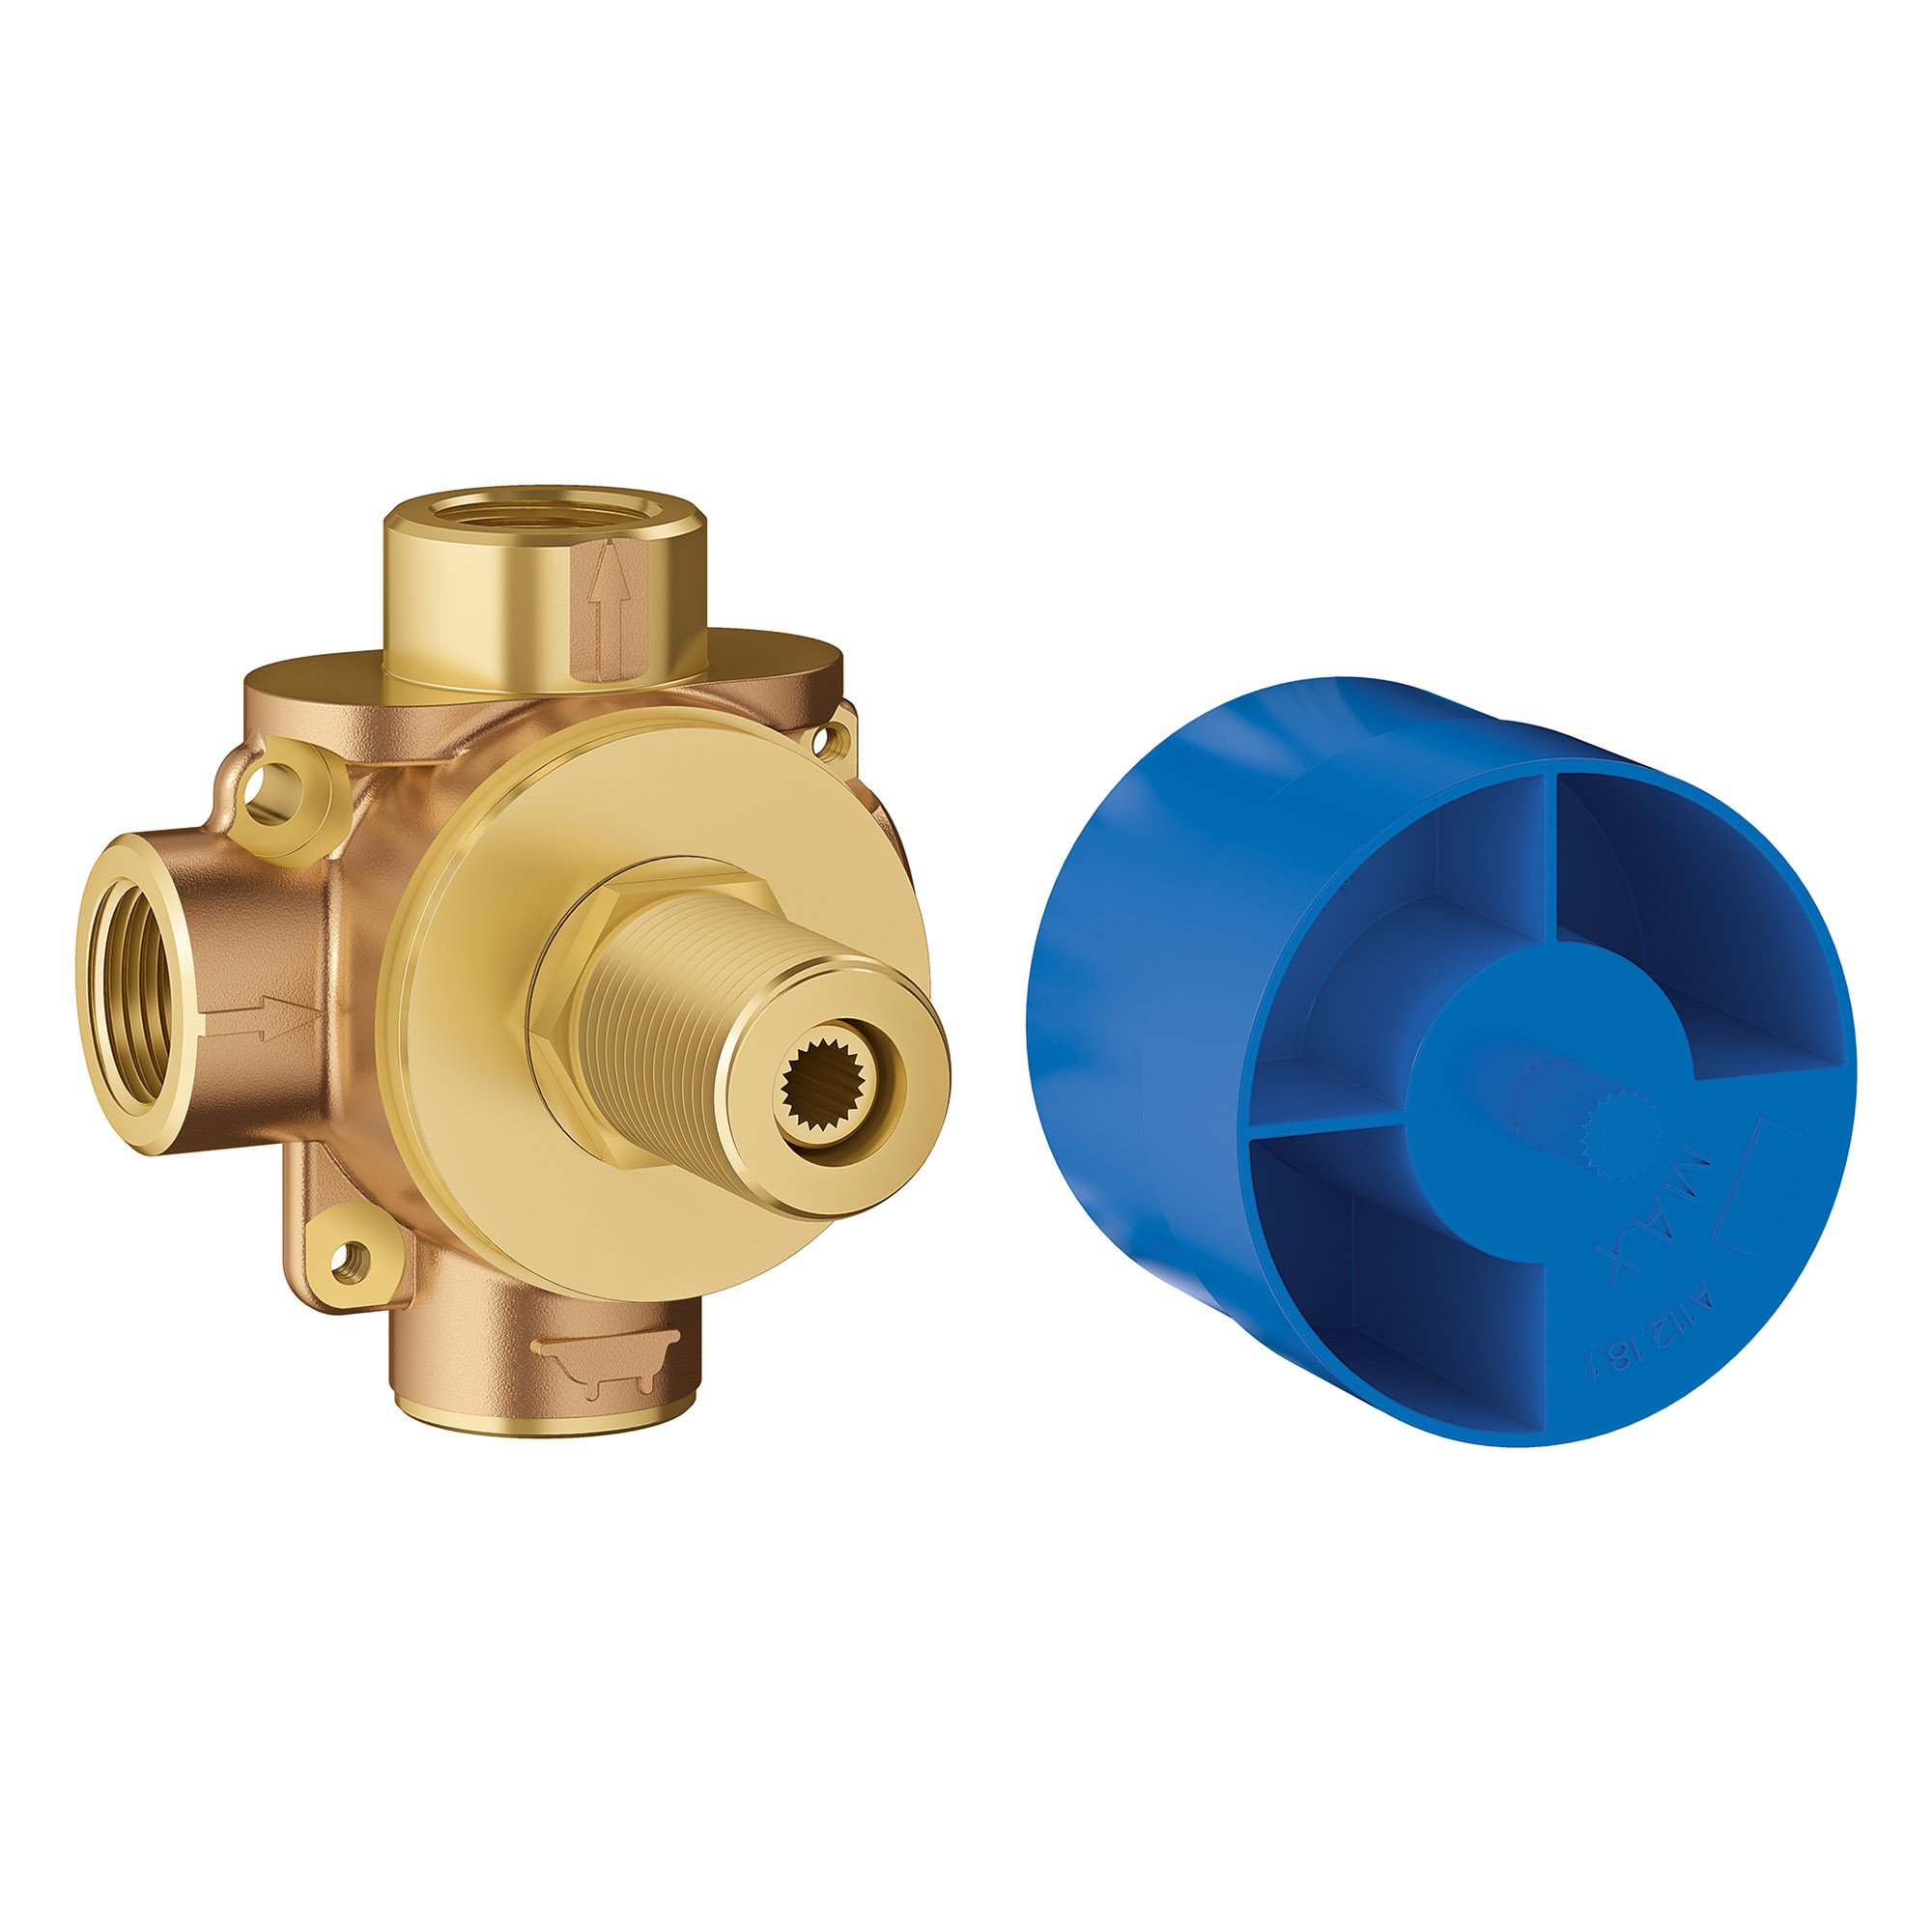 GROHE 29903000 Concetto 3-Way Diverter Rough-In Valve,,, Brass